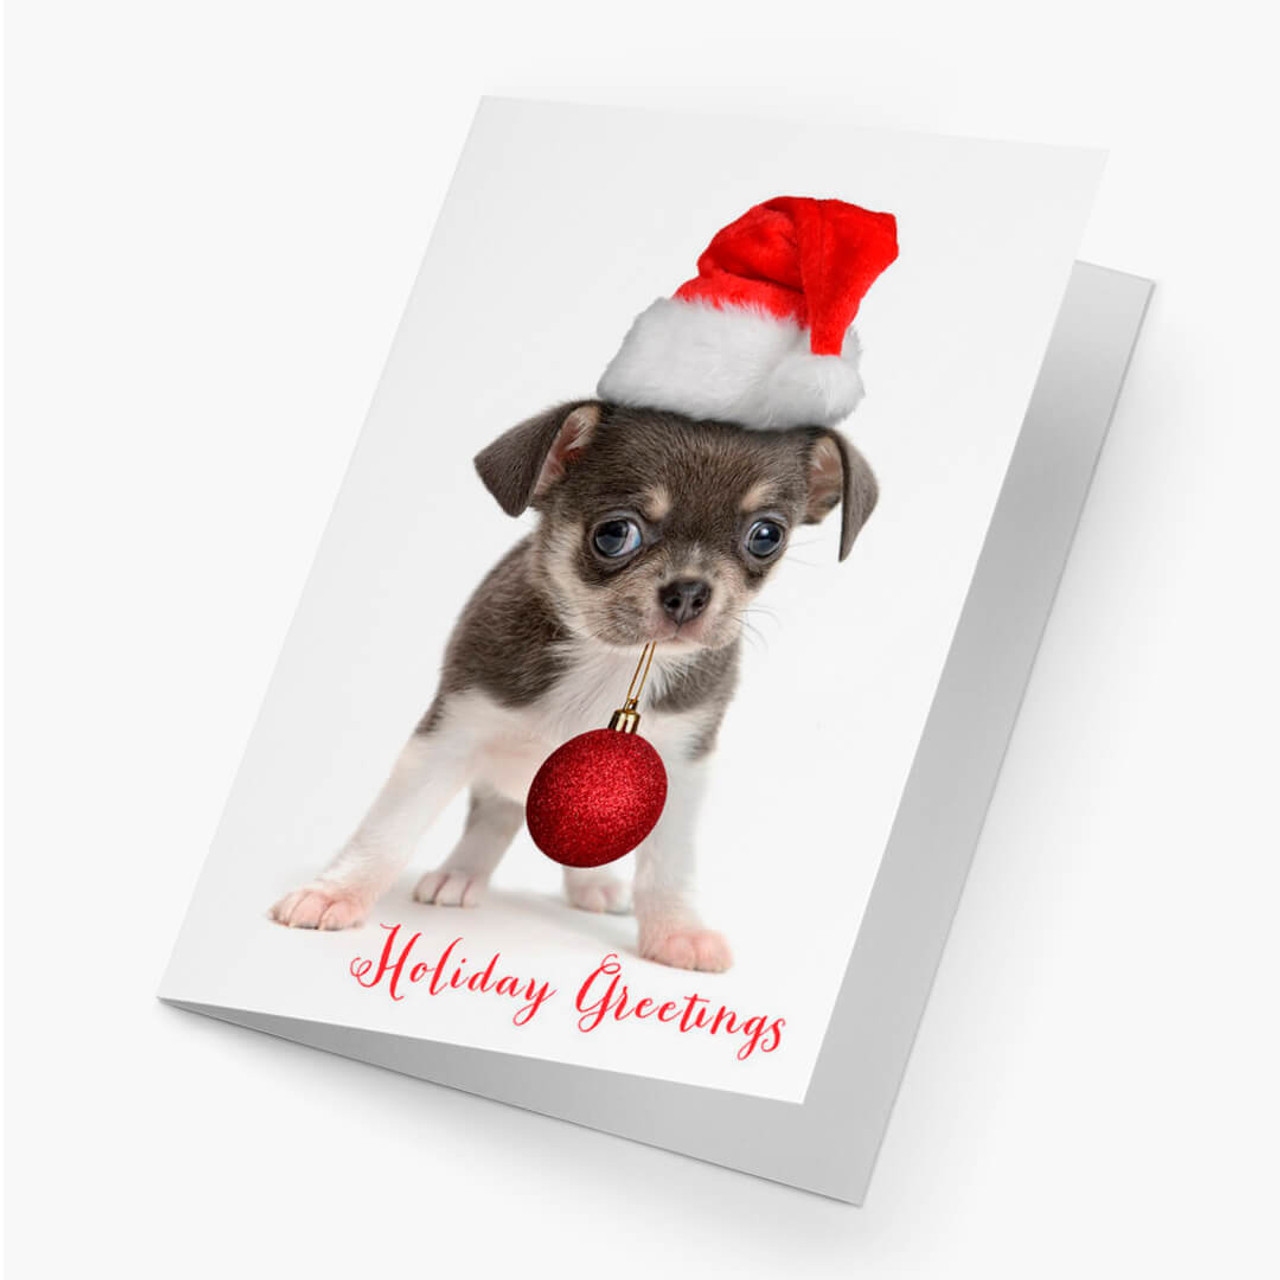 Puppy Greetings Christmas Card